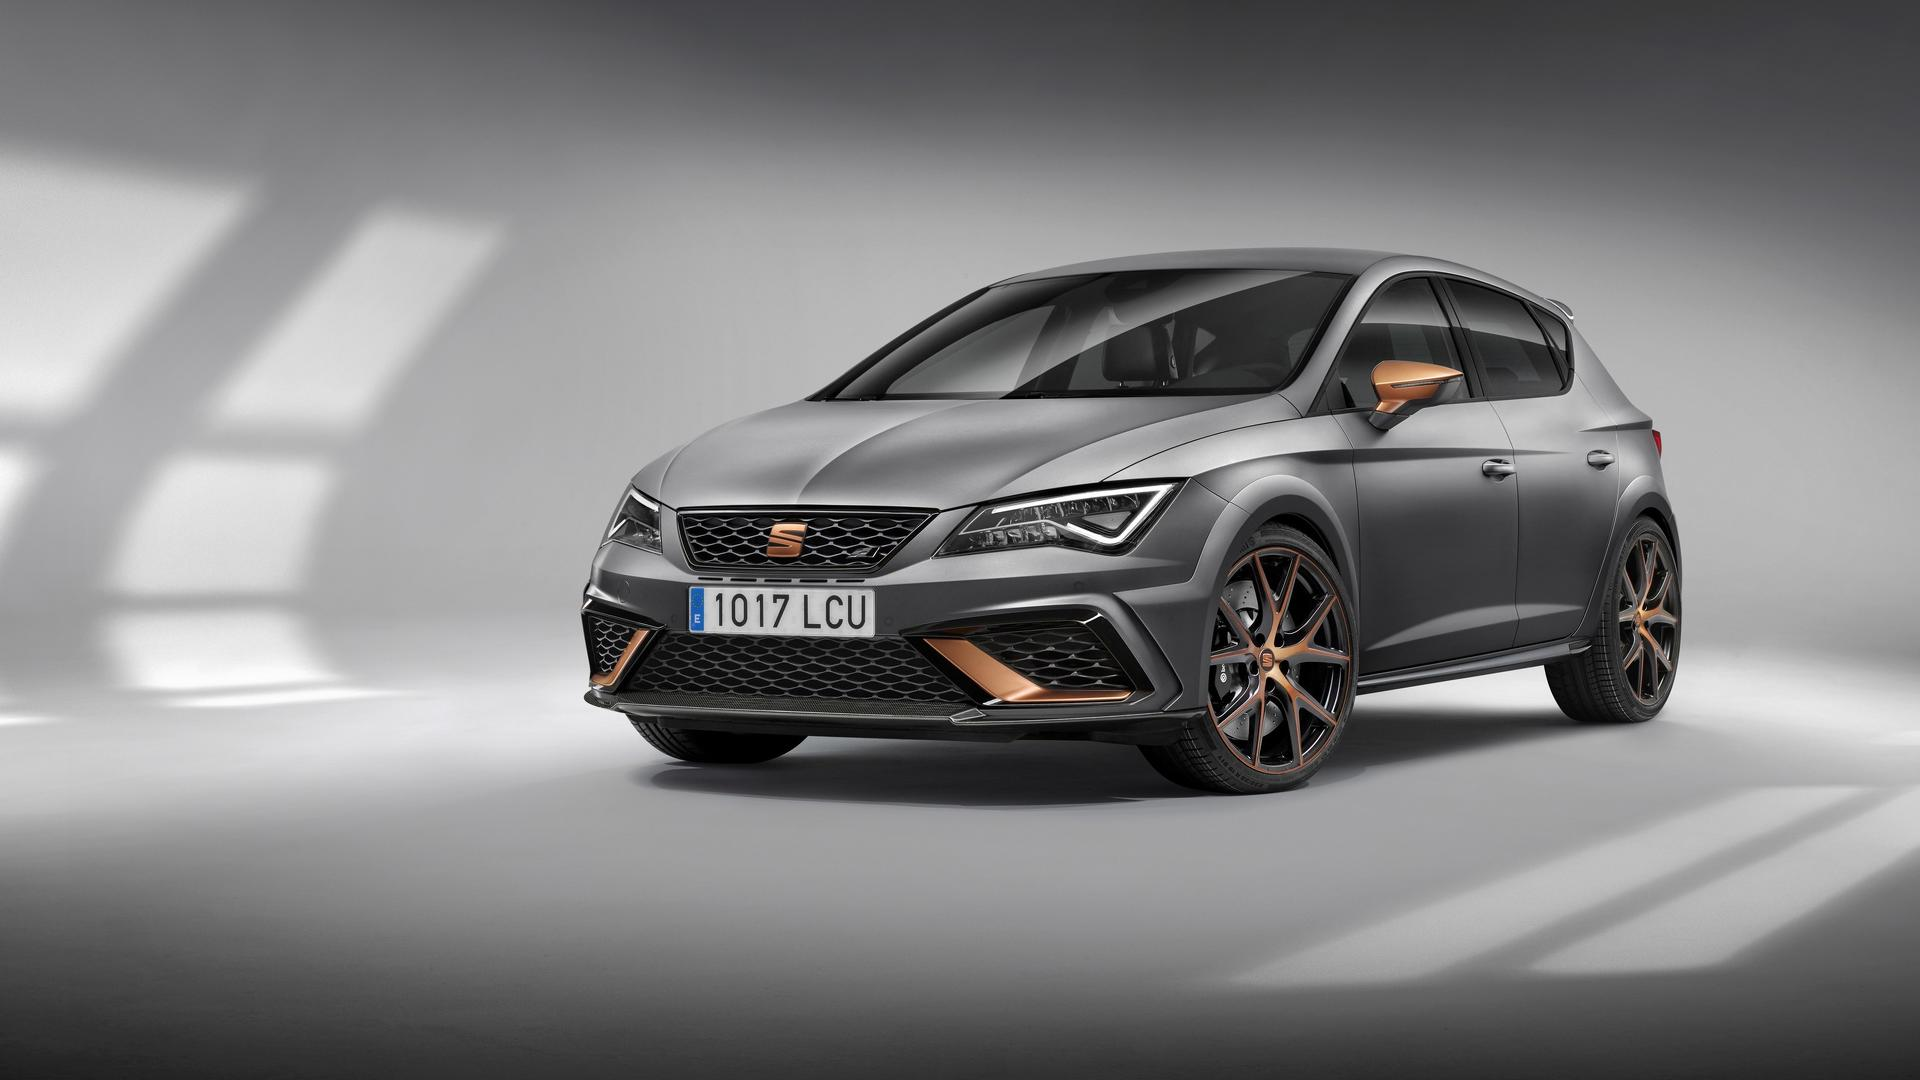 The new Seat Leon Cupra R is here